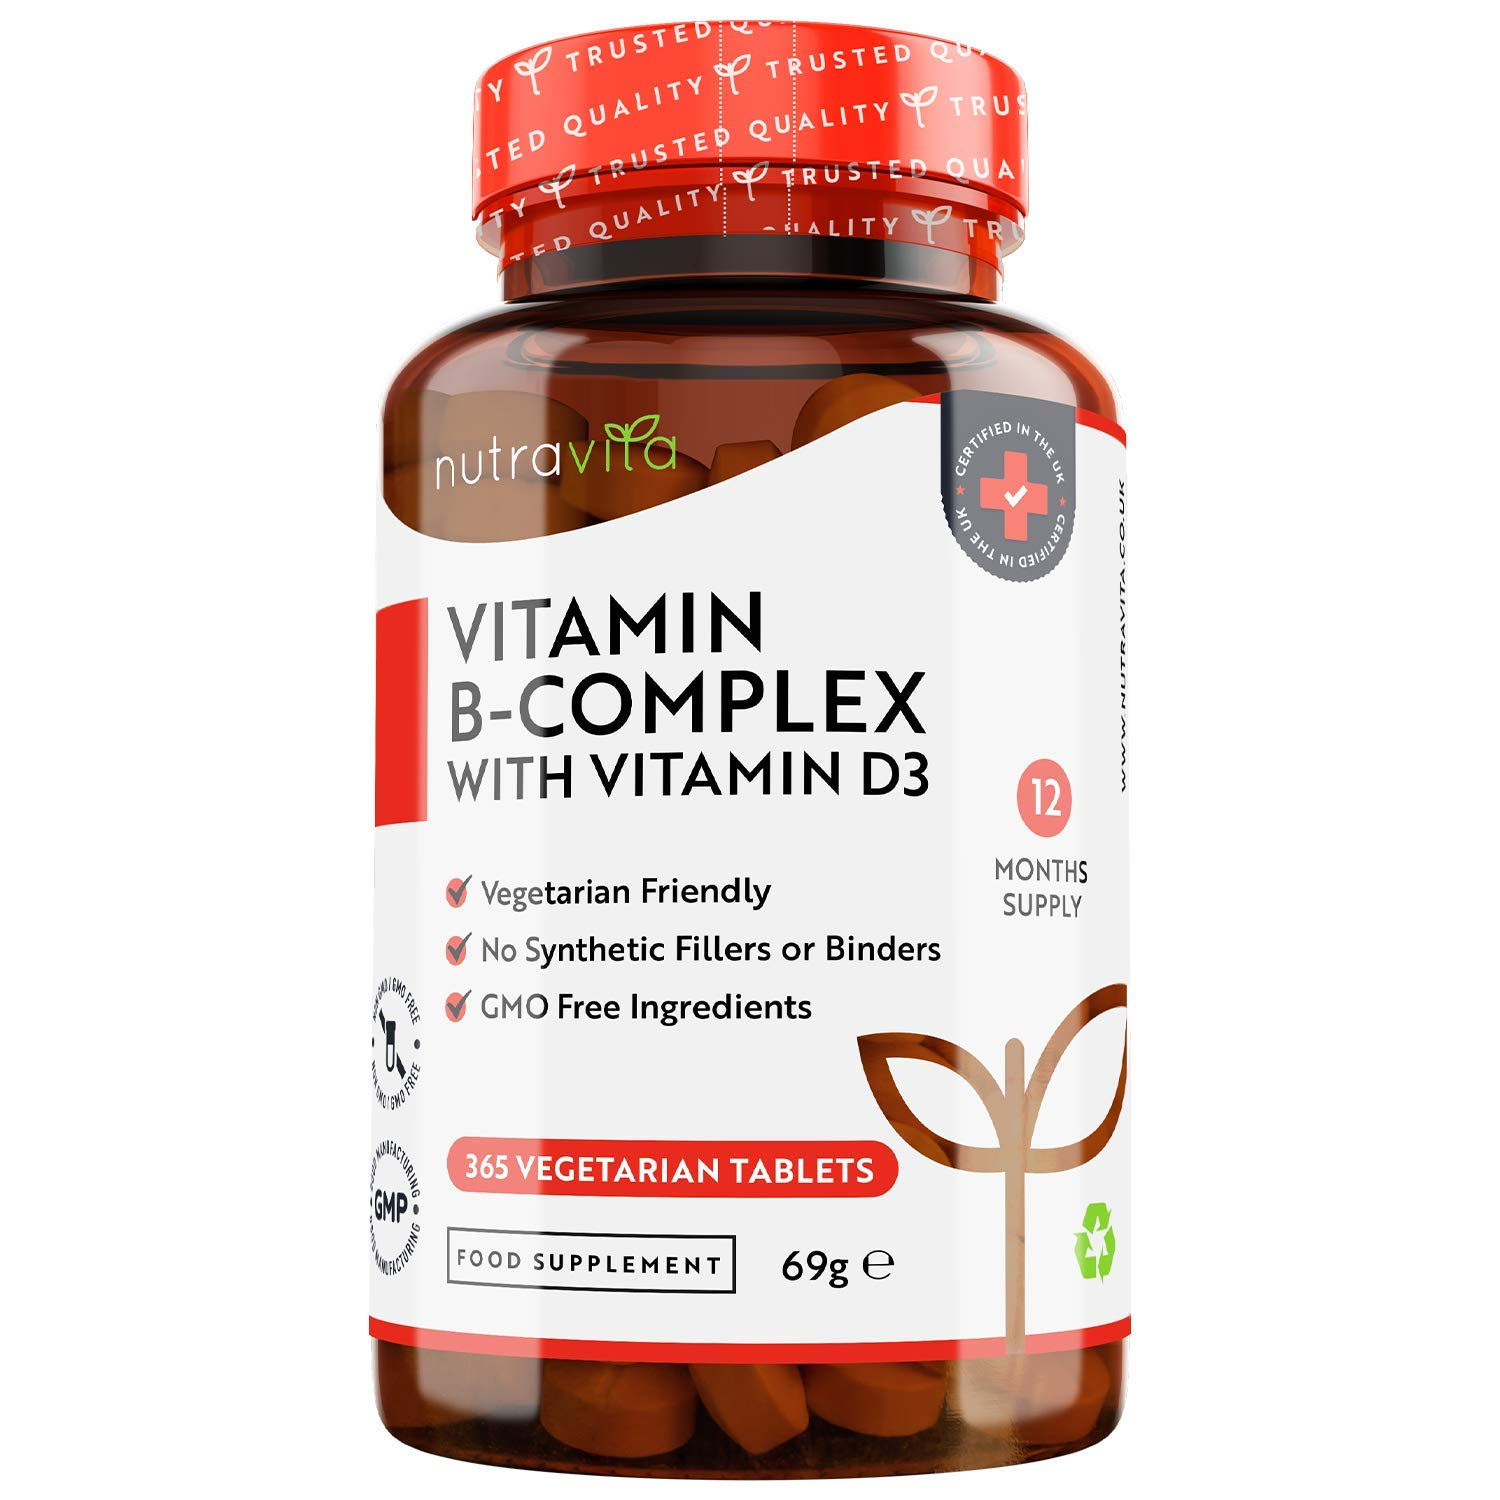 Vitamin B Complex - 365 Tablets (Full Year Supply) - All 8 B Vitamins in 1 High Strength Tablet + Added Vitamin D3 - Vitamins B1, B2, B3, B5, B6, B12, Biotin & Folic Acid - Made in The UK by Nutravita